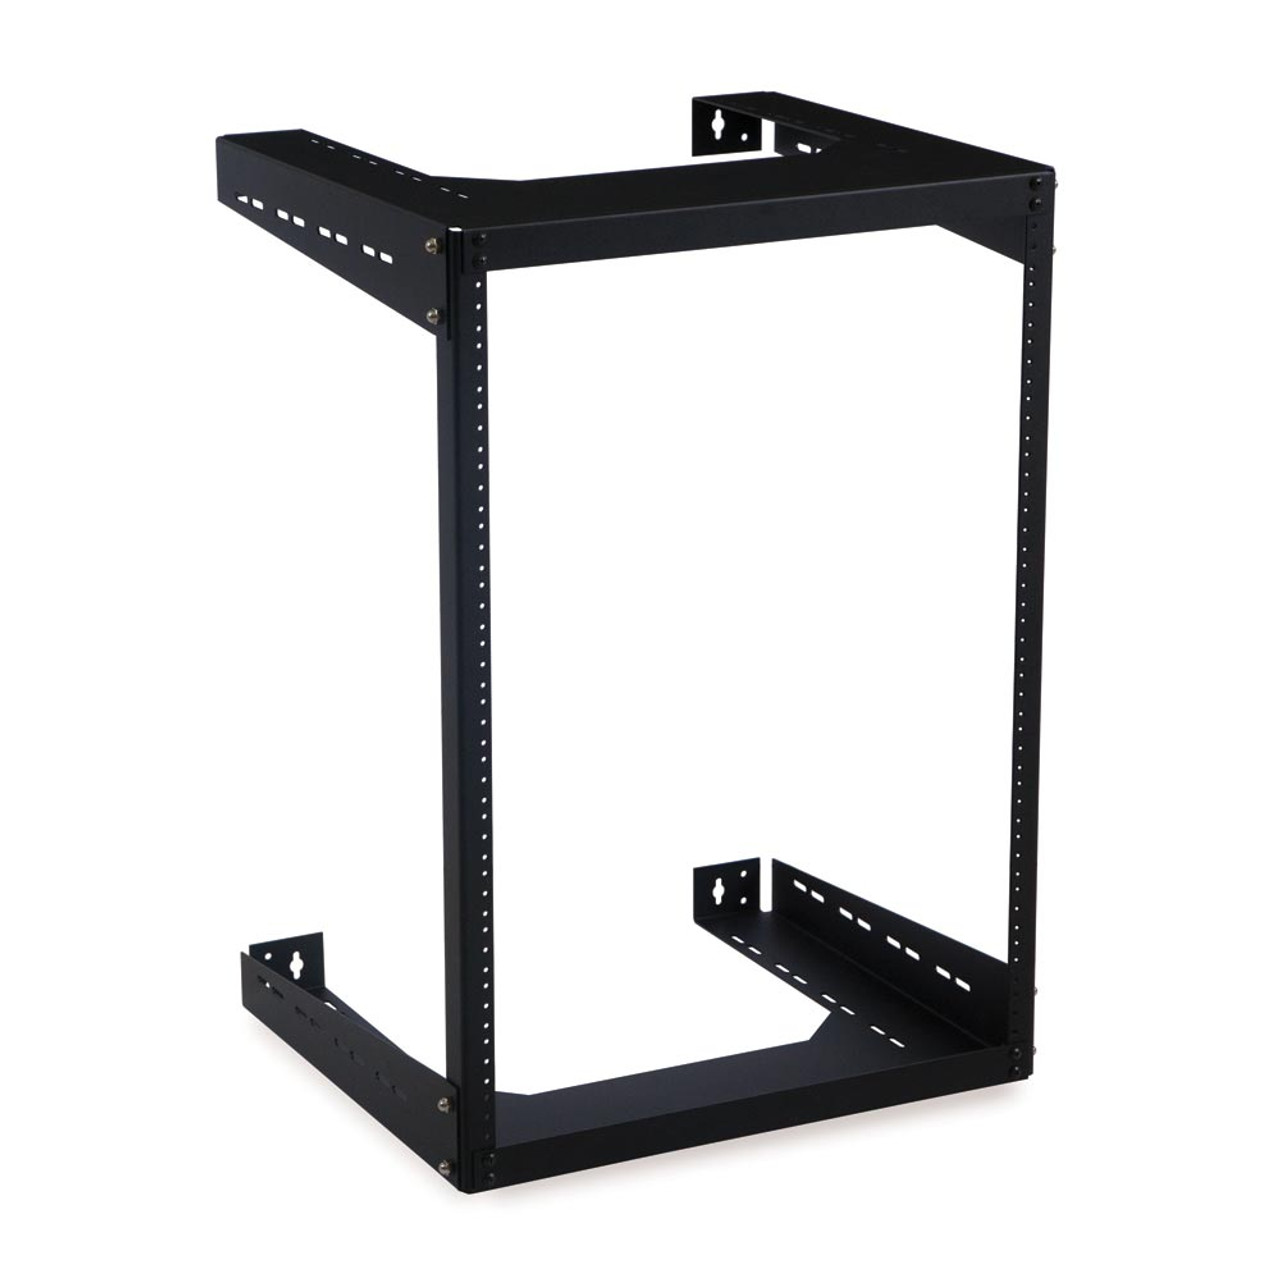 15u 18 d open frame wall mount rack with hardware